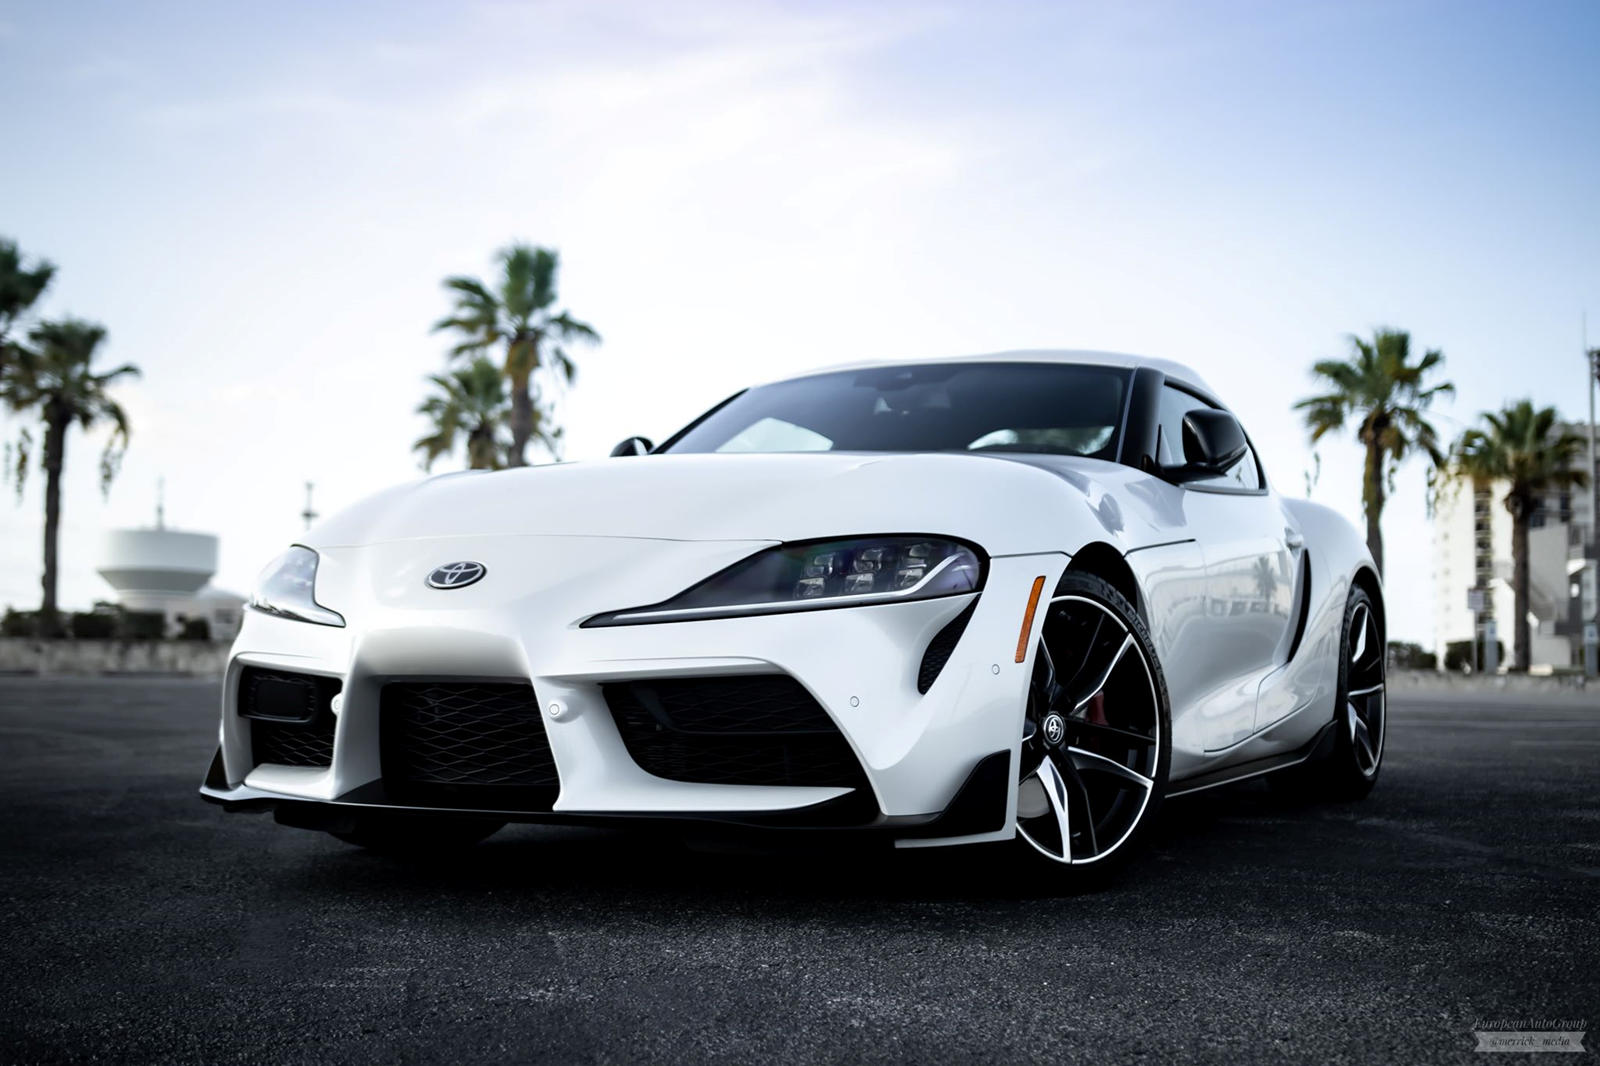 The 2020 Toyota GR Supra comes equipped with a 340-hp (261-kW) BMW engine which is only compatible with its own eight-speed transmission. It sprints 0-60 km/h (0-97 km/h) in four seconds flat and often shows much better performance numbers at the dyno than those stated in the manual. Despite this, many diehard Supra fans want their stick shift back, and want it badly.